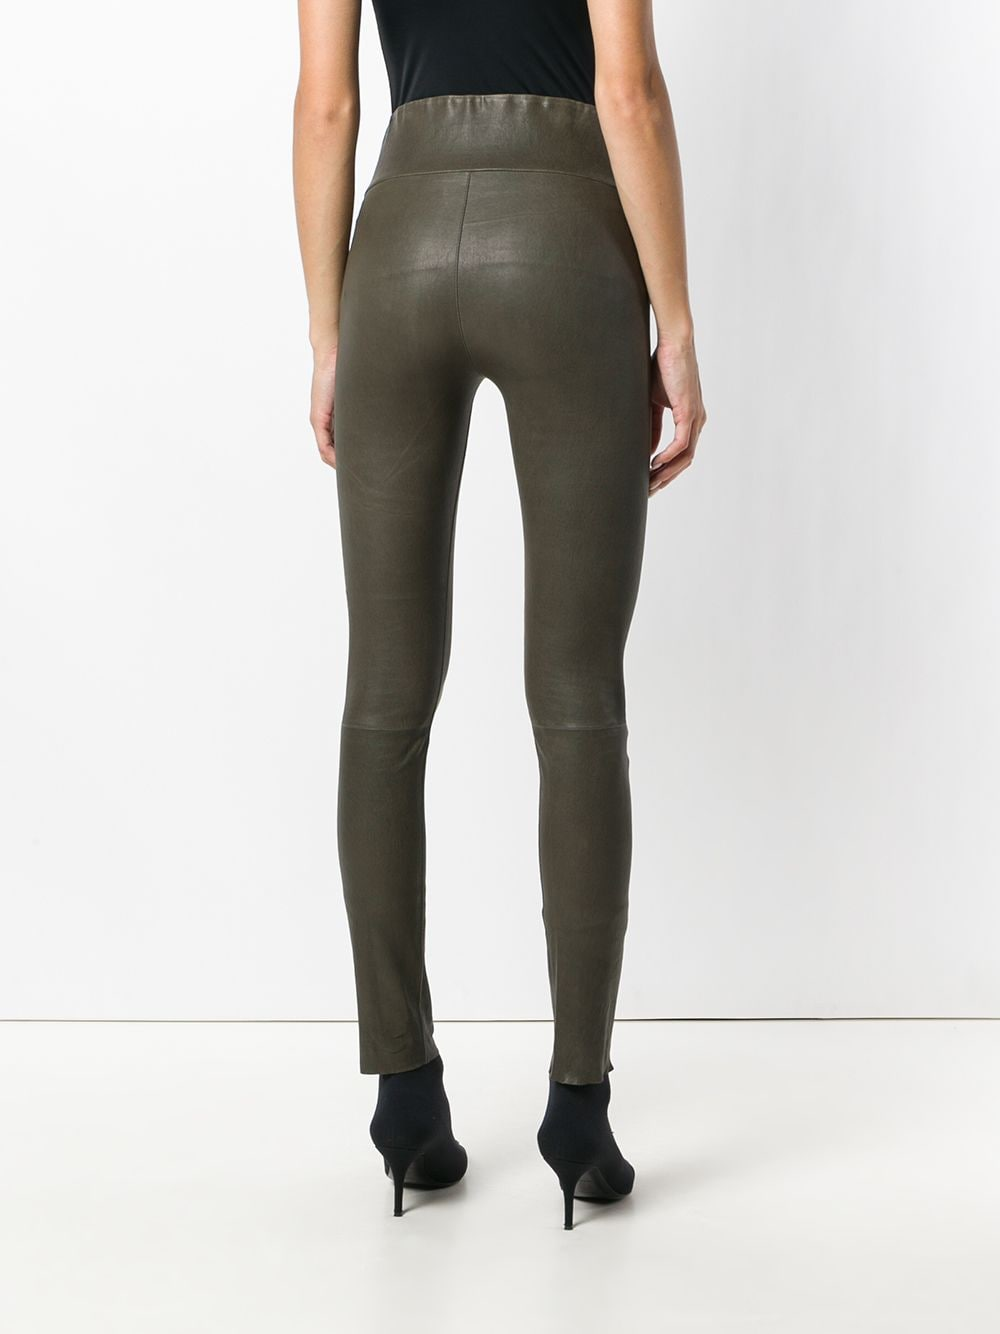 Picture of Sprwmn   Hight Waist Ankle Leggings